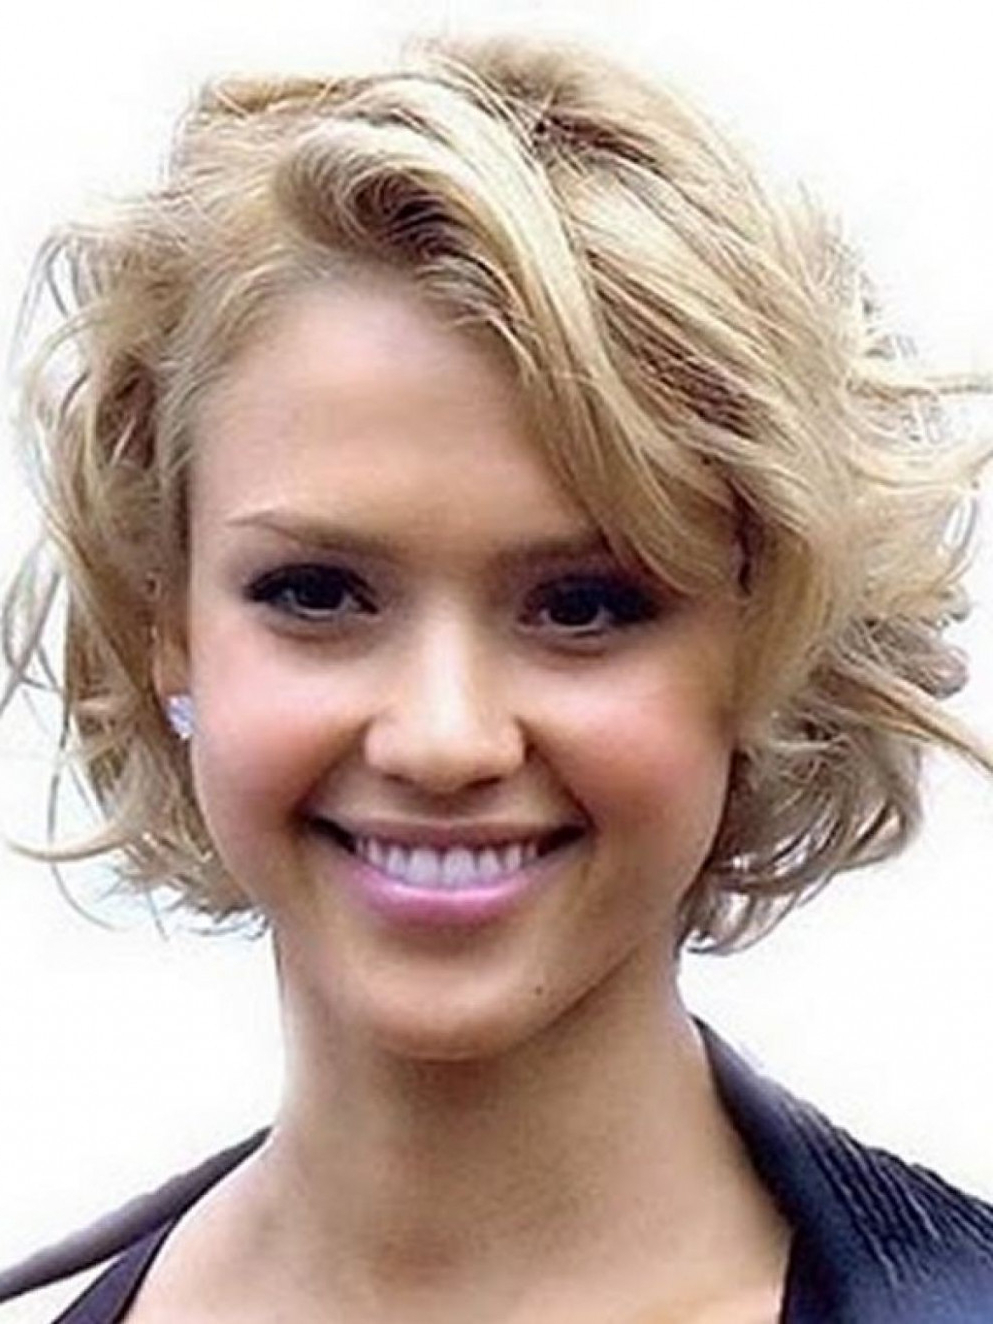 Short Hairstyles For Thick Wavy Hair Round Face Archives . (View 4 of 25)